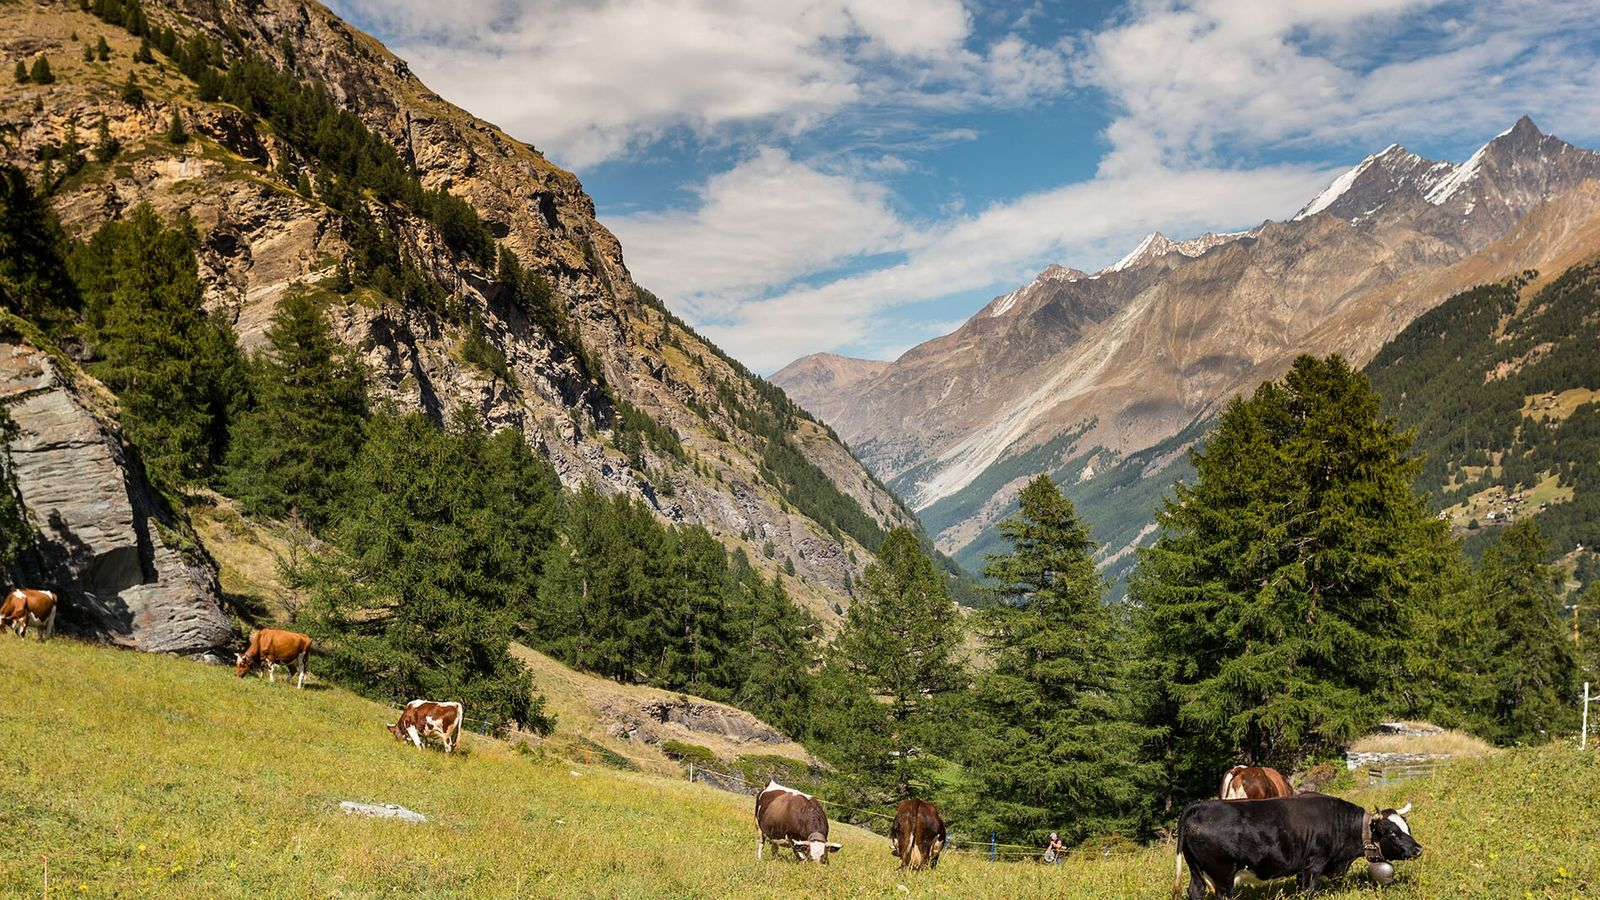 The mountains around Zermatt are renowned for skiing, climbing and hiking, with cattle grazing on the Alpine ...